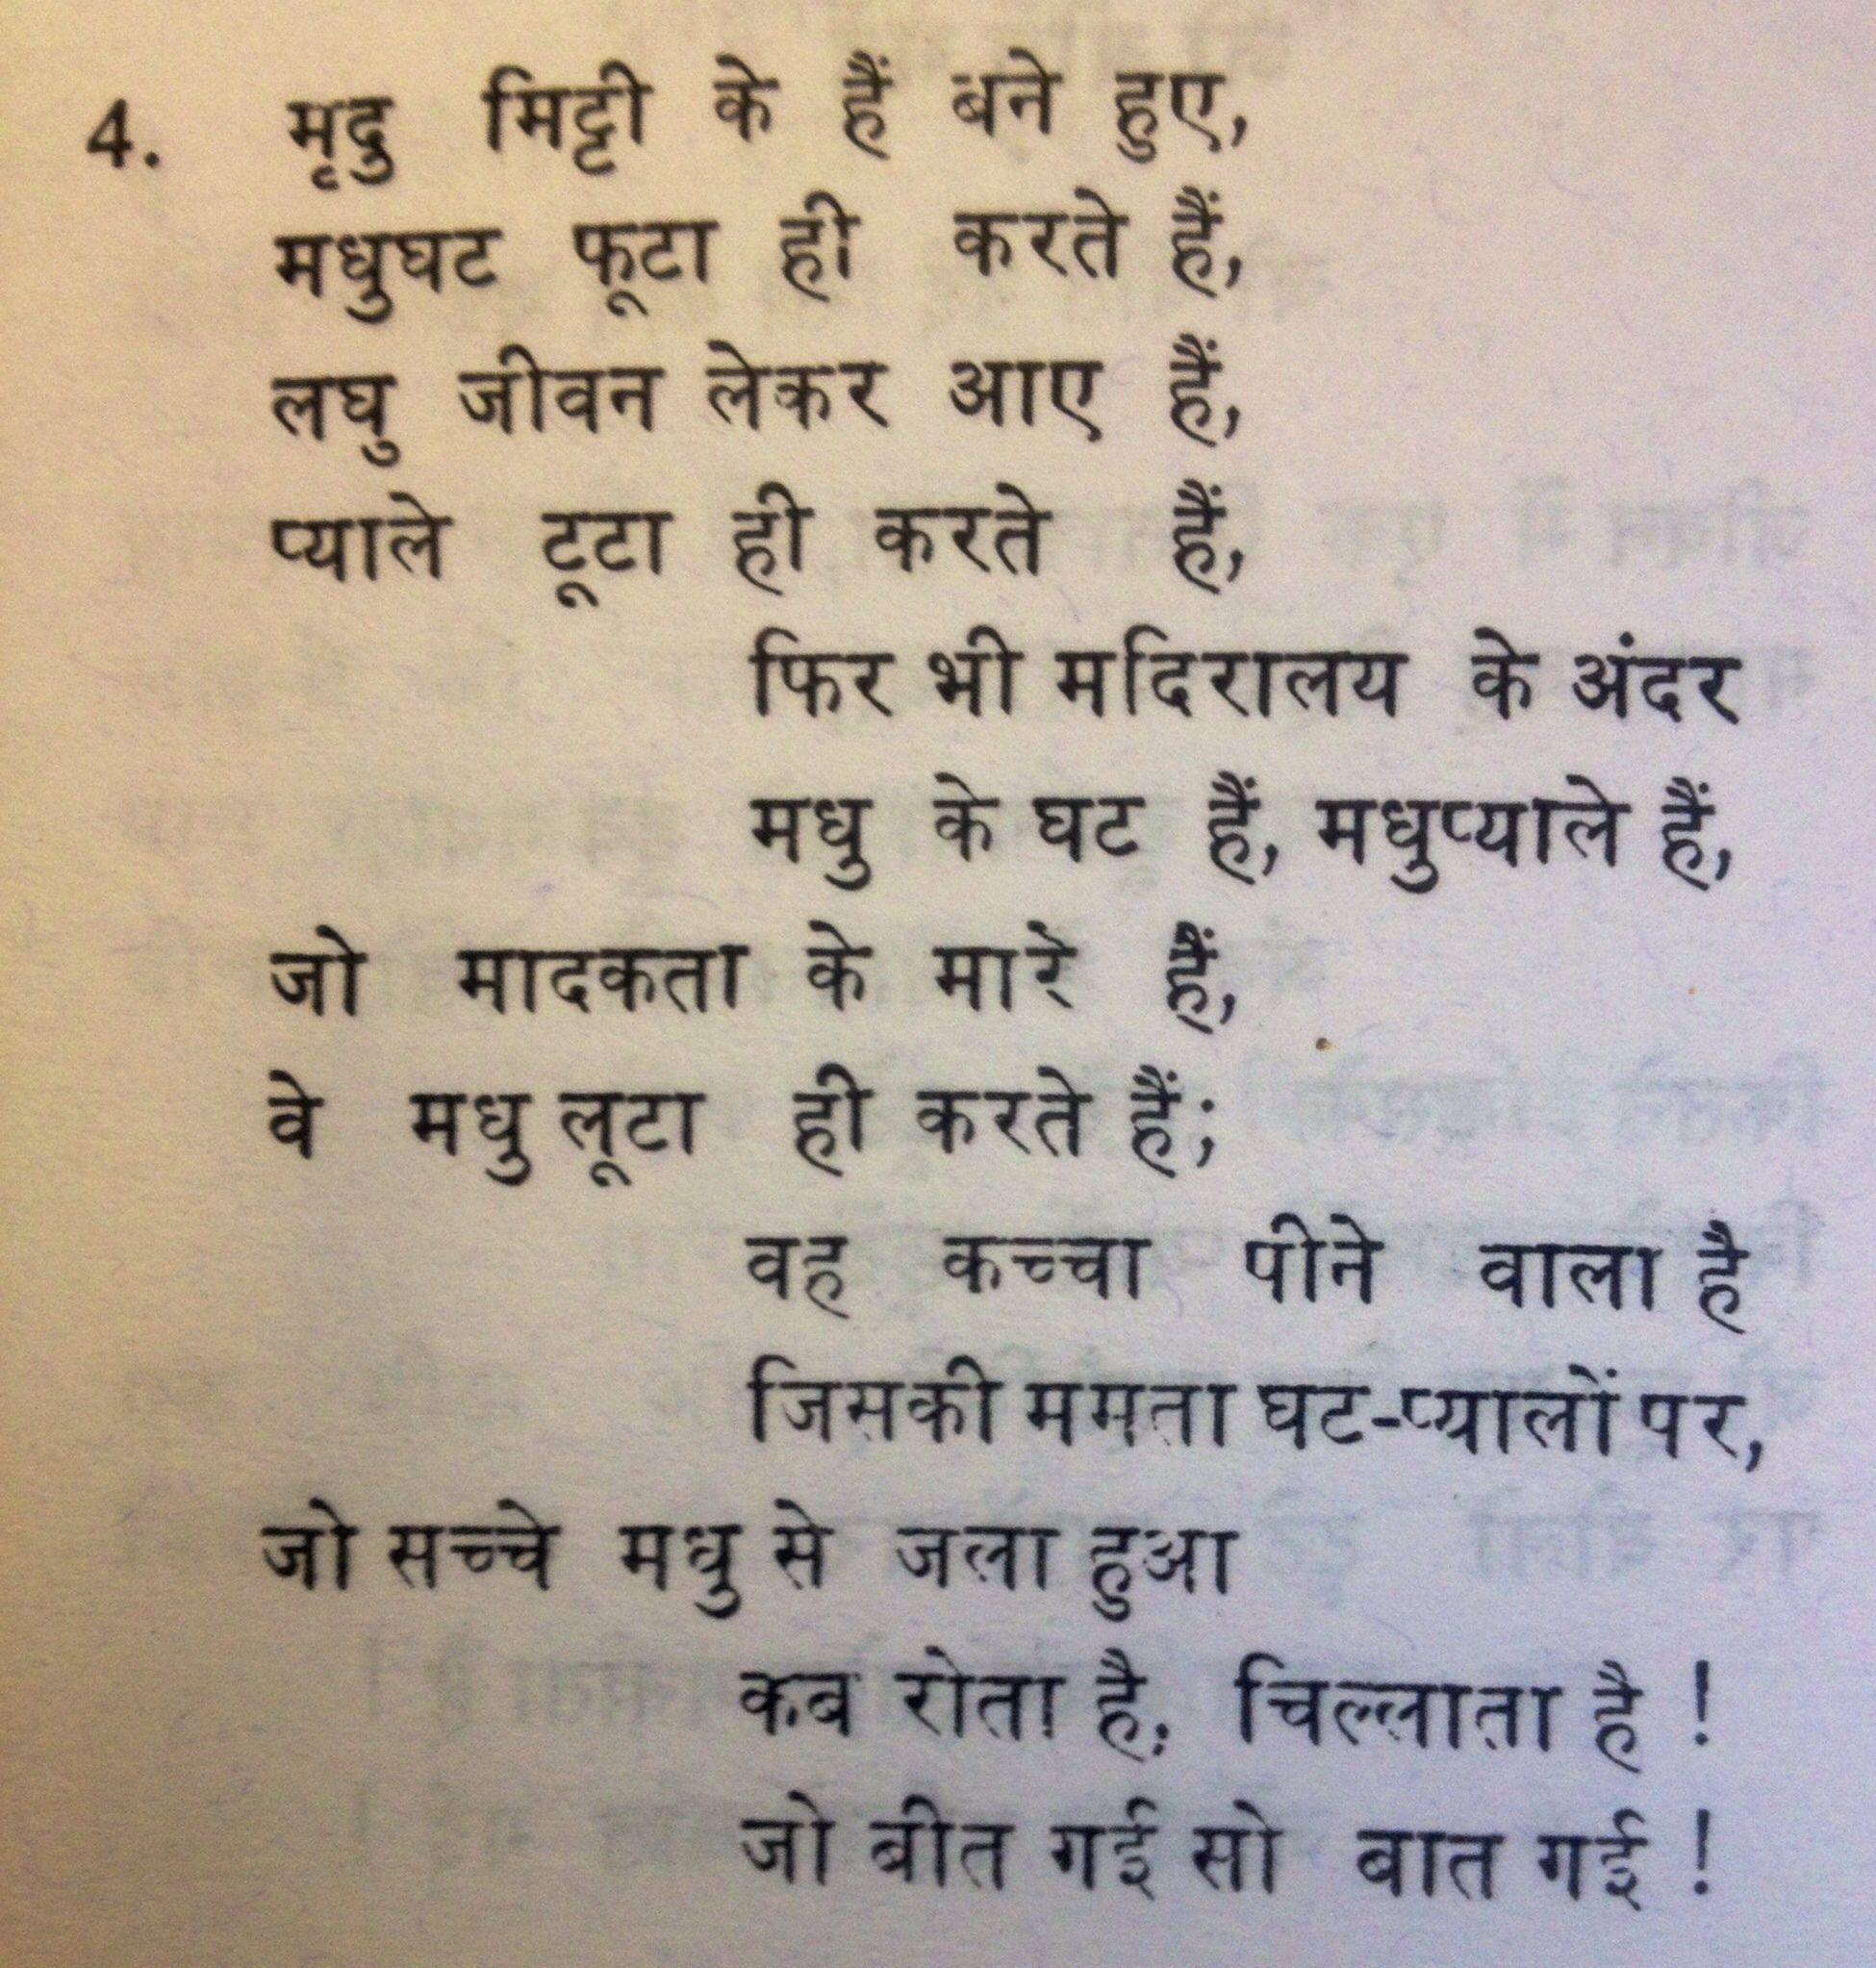 Harivansh rai bachchan poems in hindi madhushala